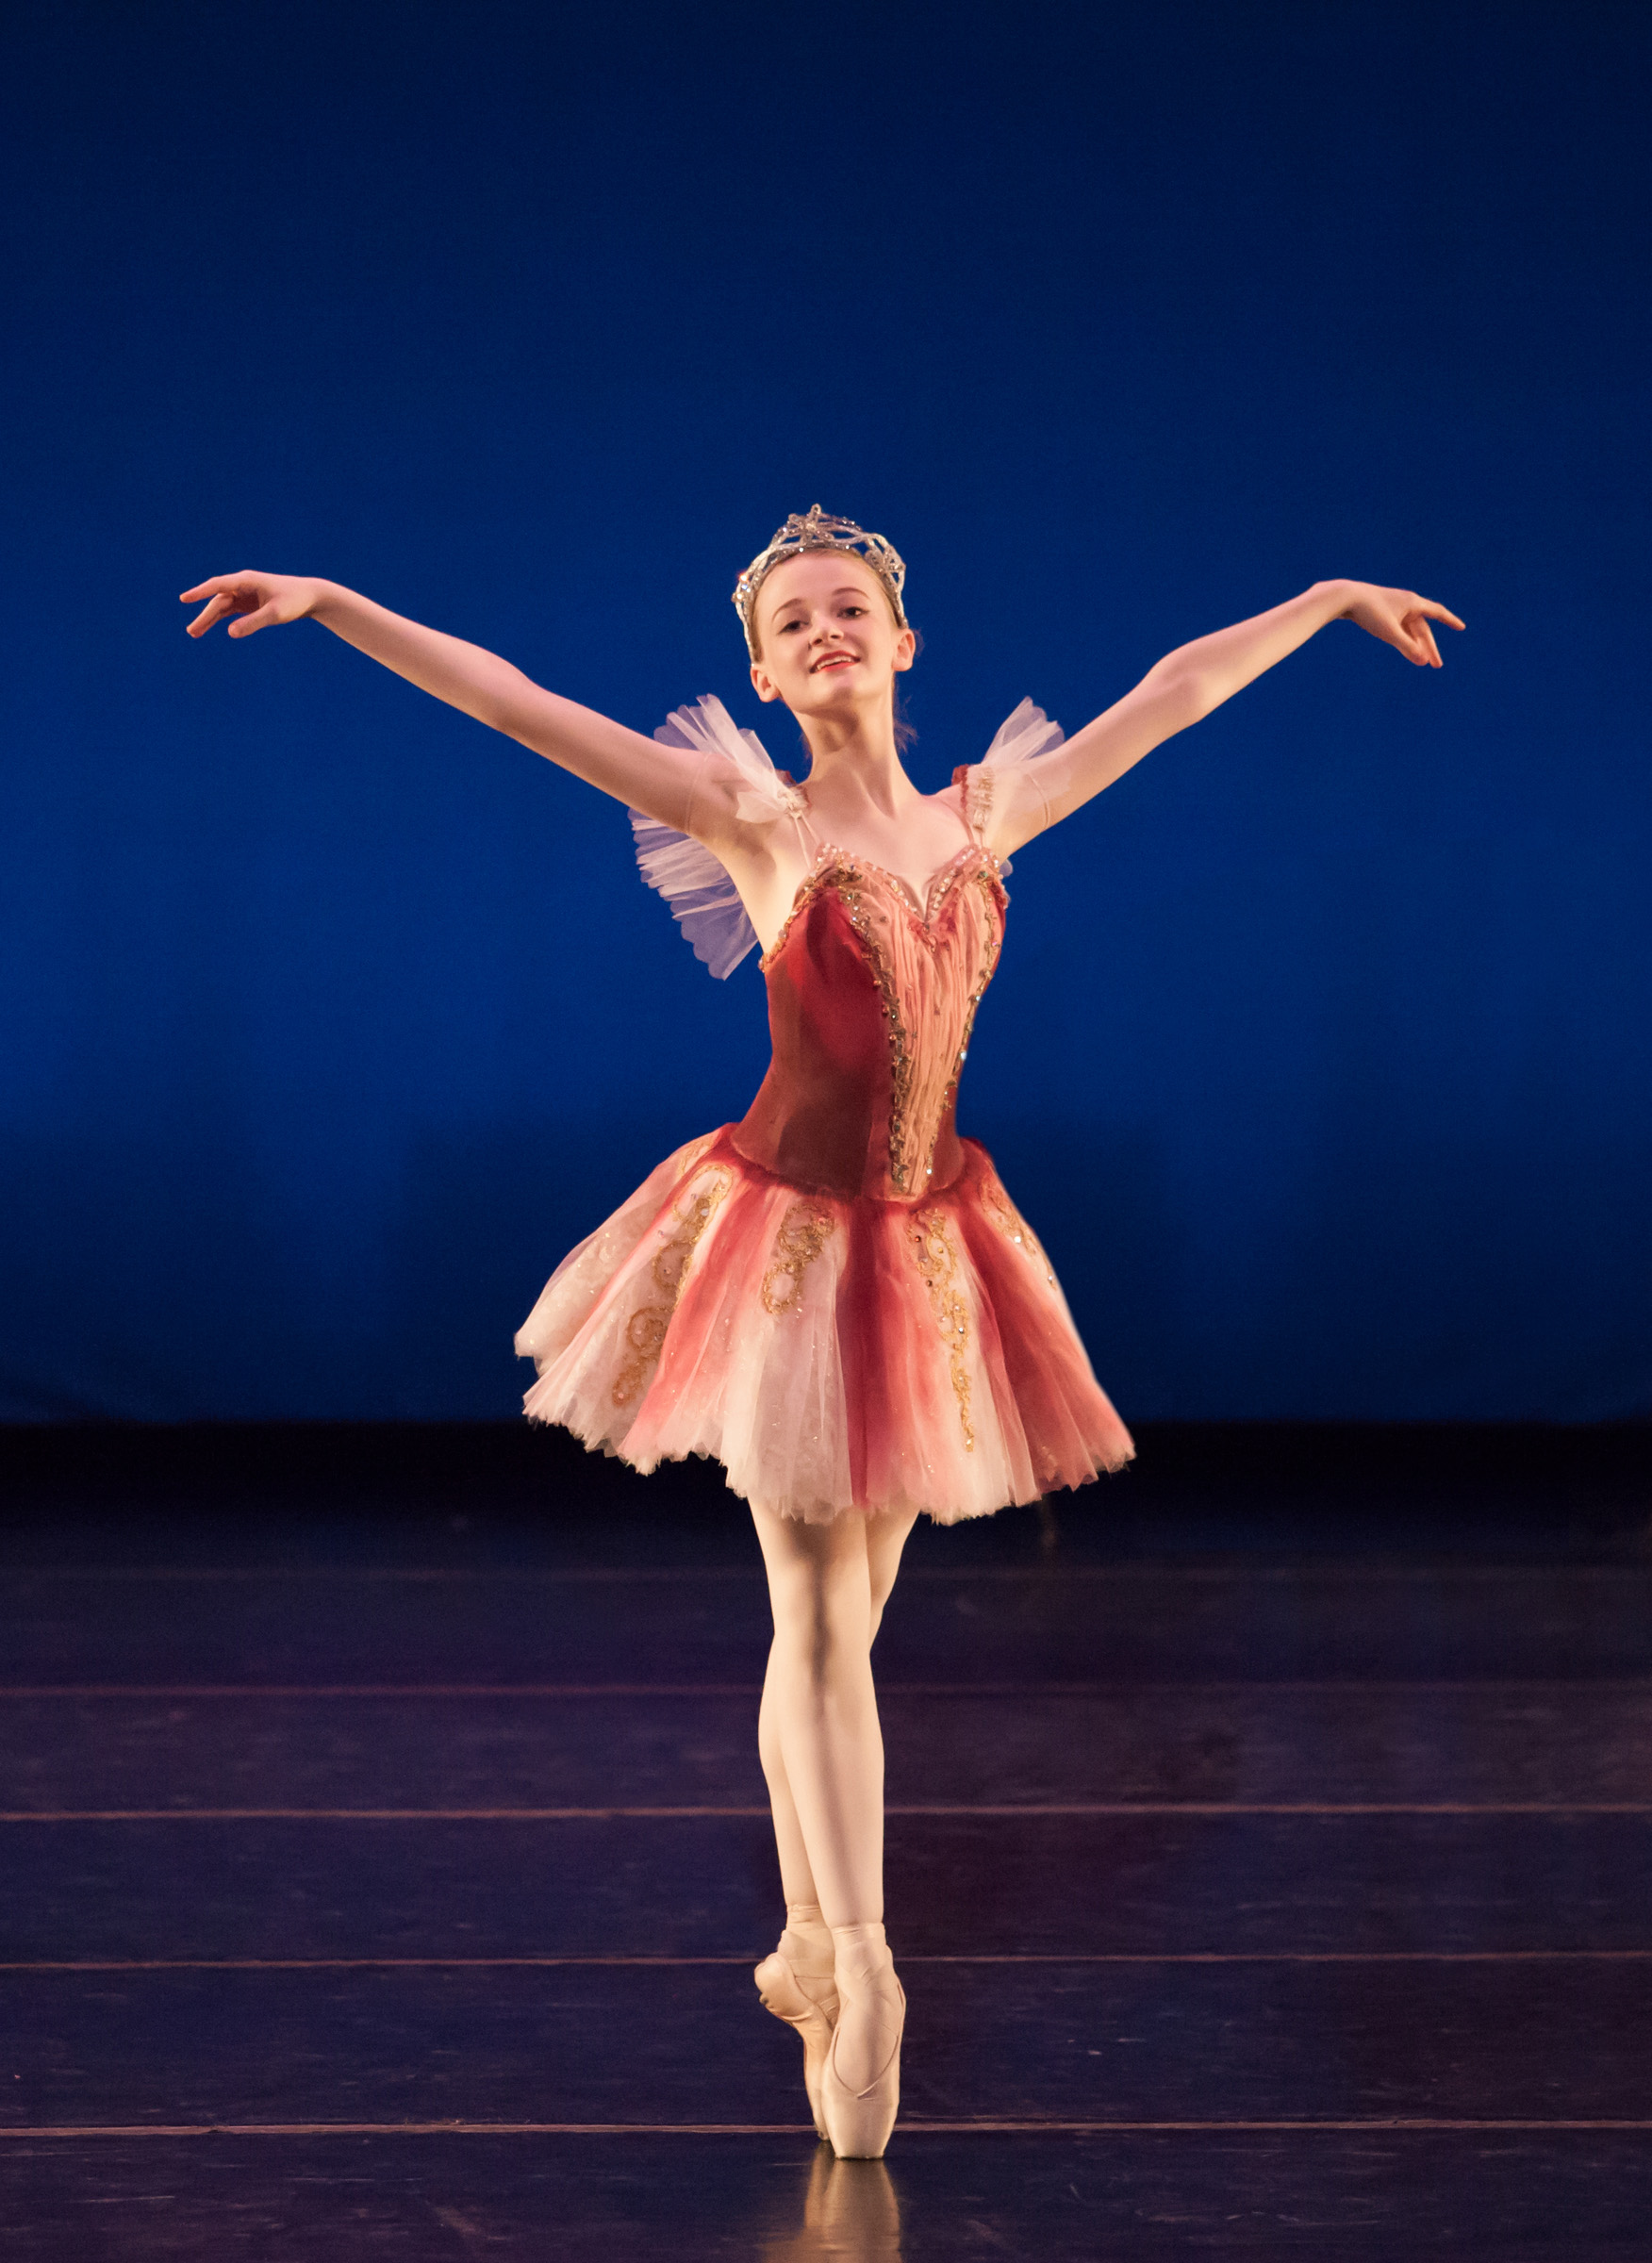 The School of American Ballet, established in New York City in by George Balanchine and Lincoln Kirstein, is the preeminent ballet academy in the United States today.